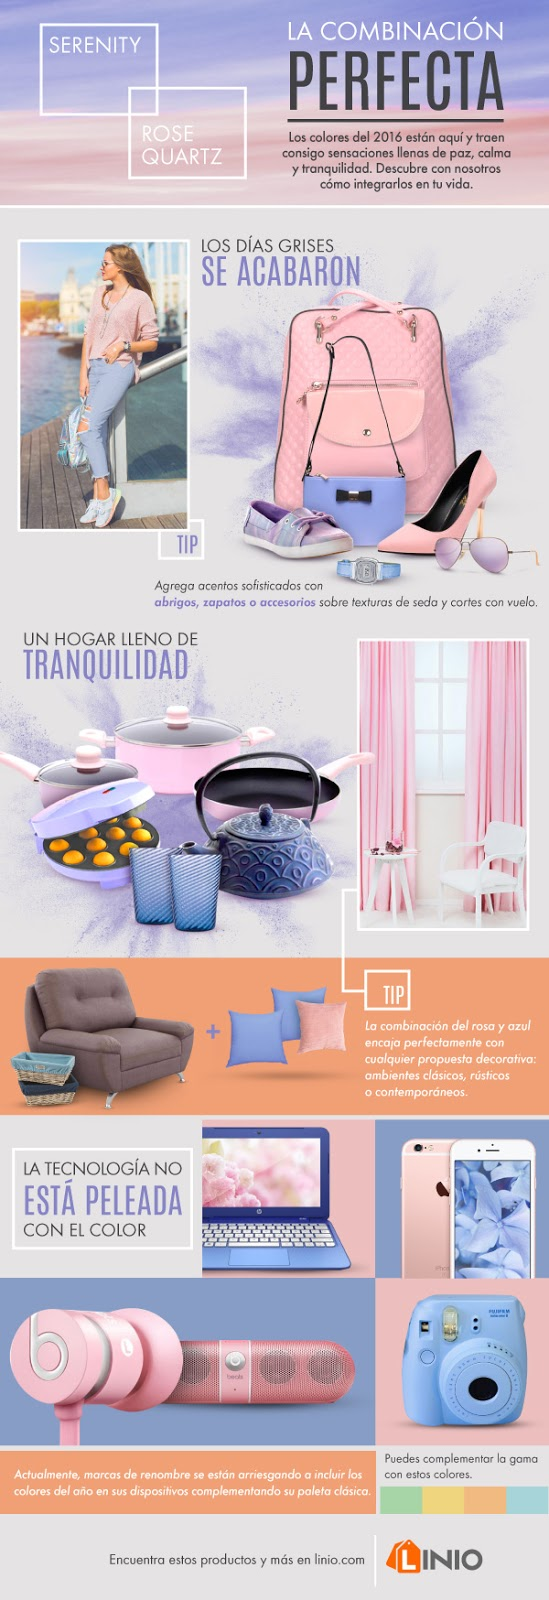 how to mix Rose Quartz y Serenity